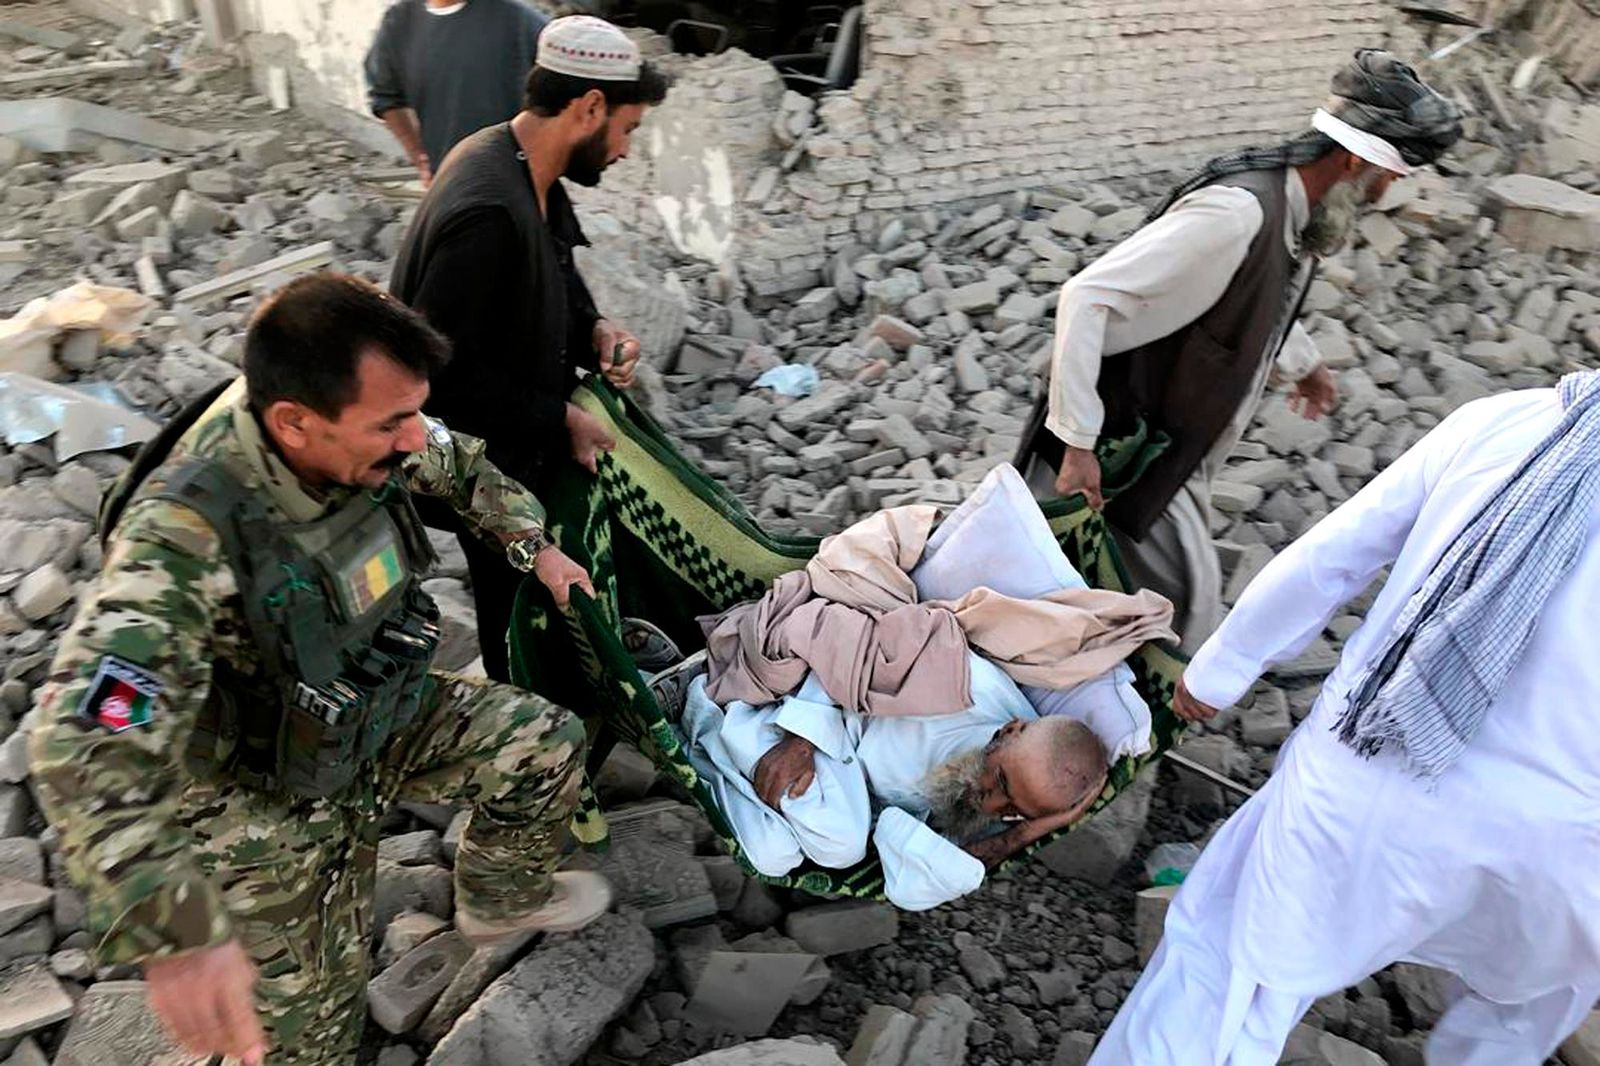 An Afghan security member and people carry an injured man after a suicide attack in Zabul, Afghanistan, Thursday, Sept. 19, 2019. A powerful early morning suicide truck bomb devastated a hospital in southern Afghanistan on Thursday. (AP Photo/Ahmad Wali Sarhadi)